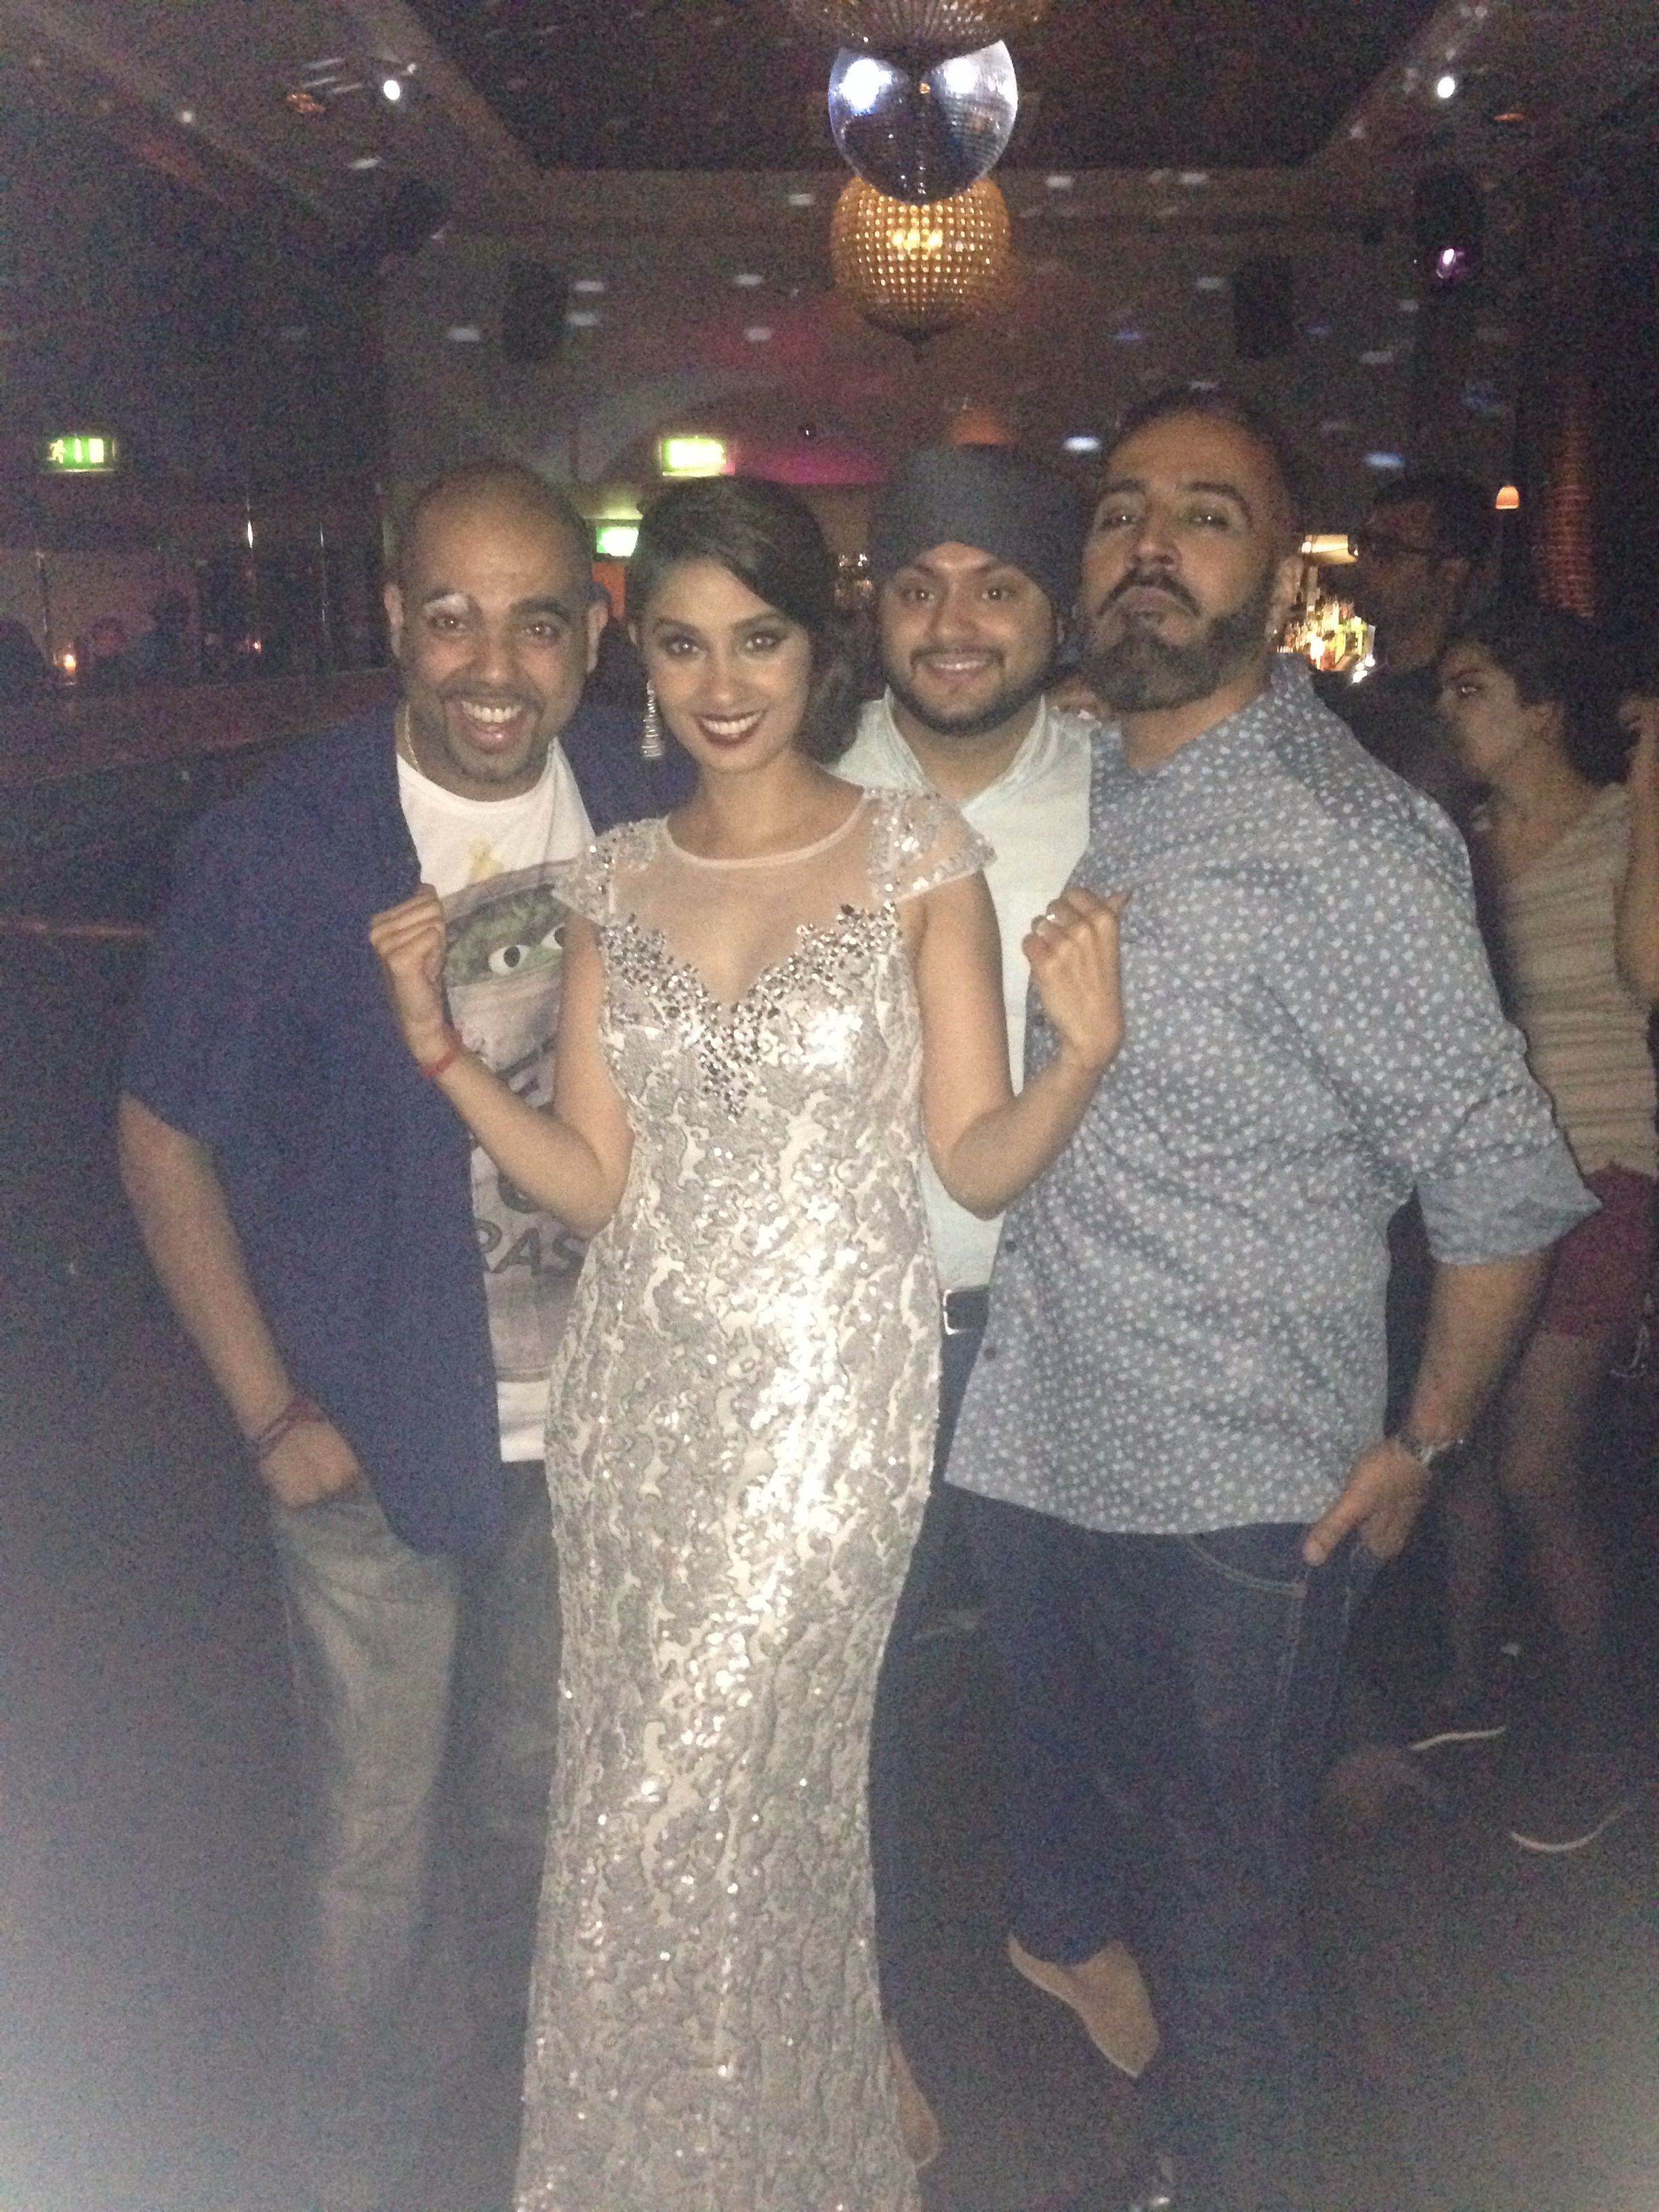 Sunny and Shay at the London Indian film after party!! www.sunnyandshay.co.uk